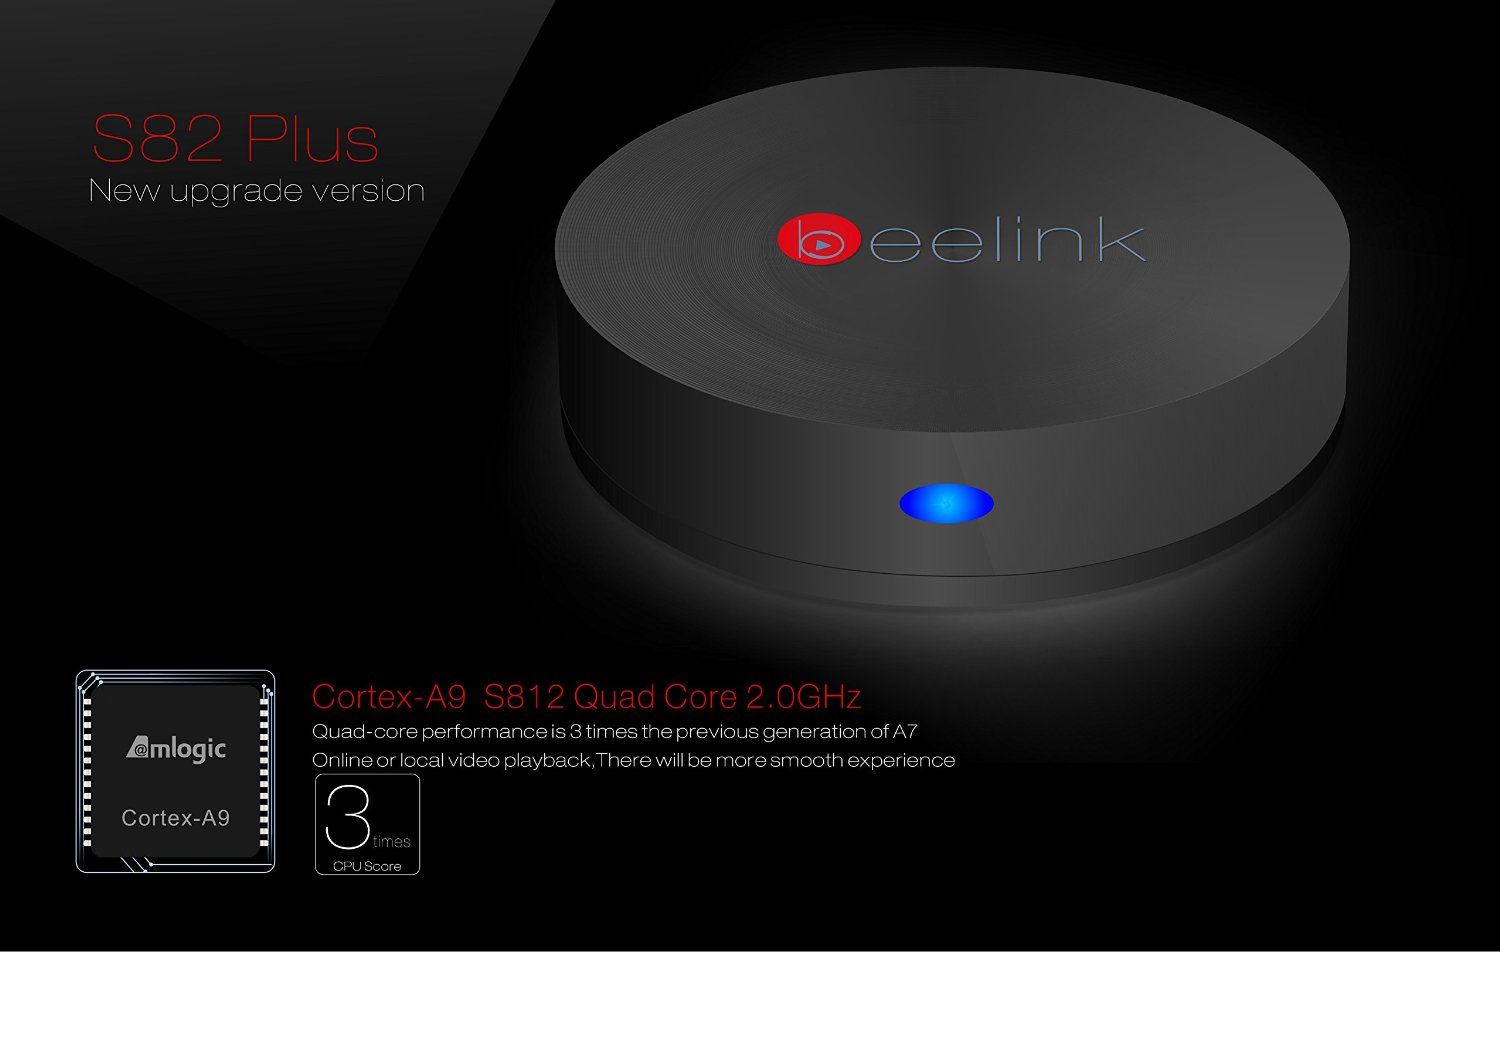 The Line of Beelink Android TV Boxes Reviewed